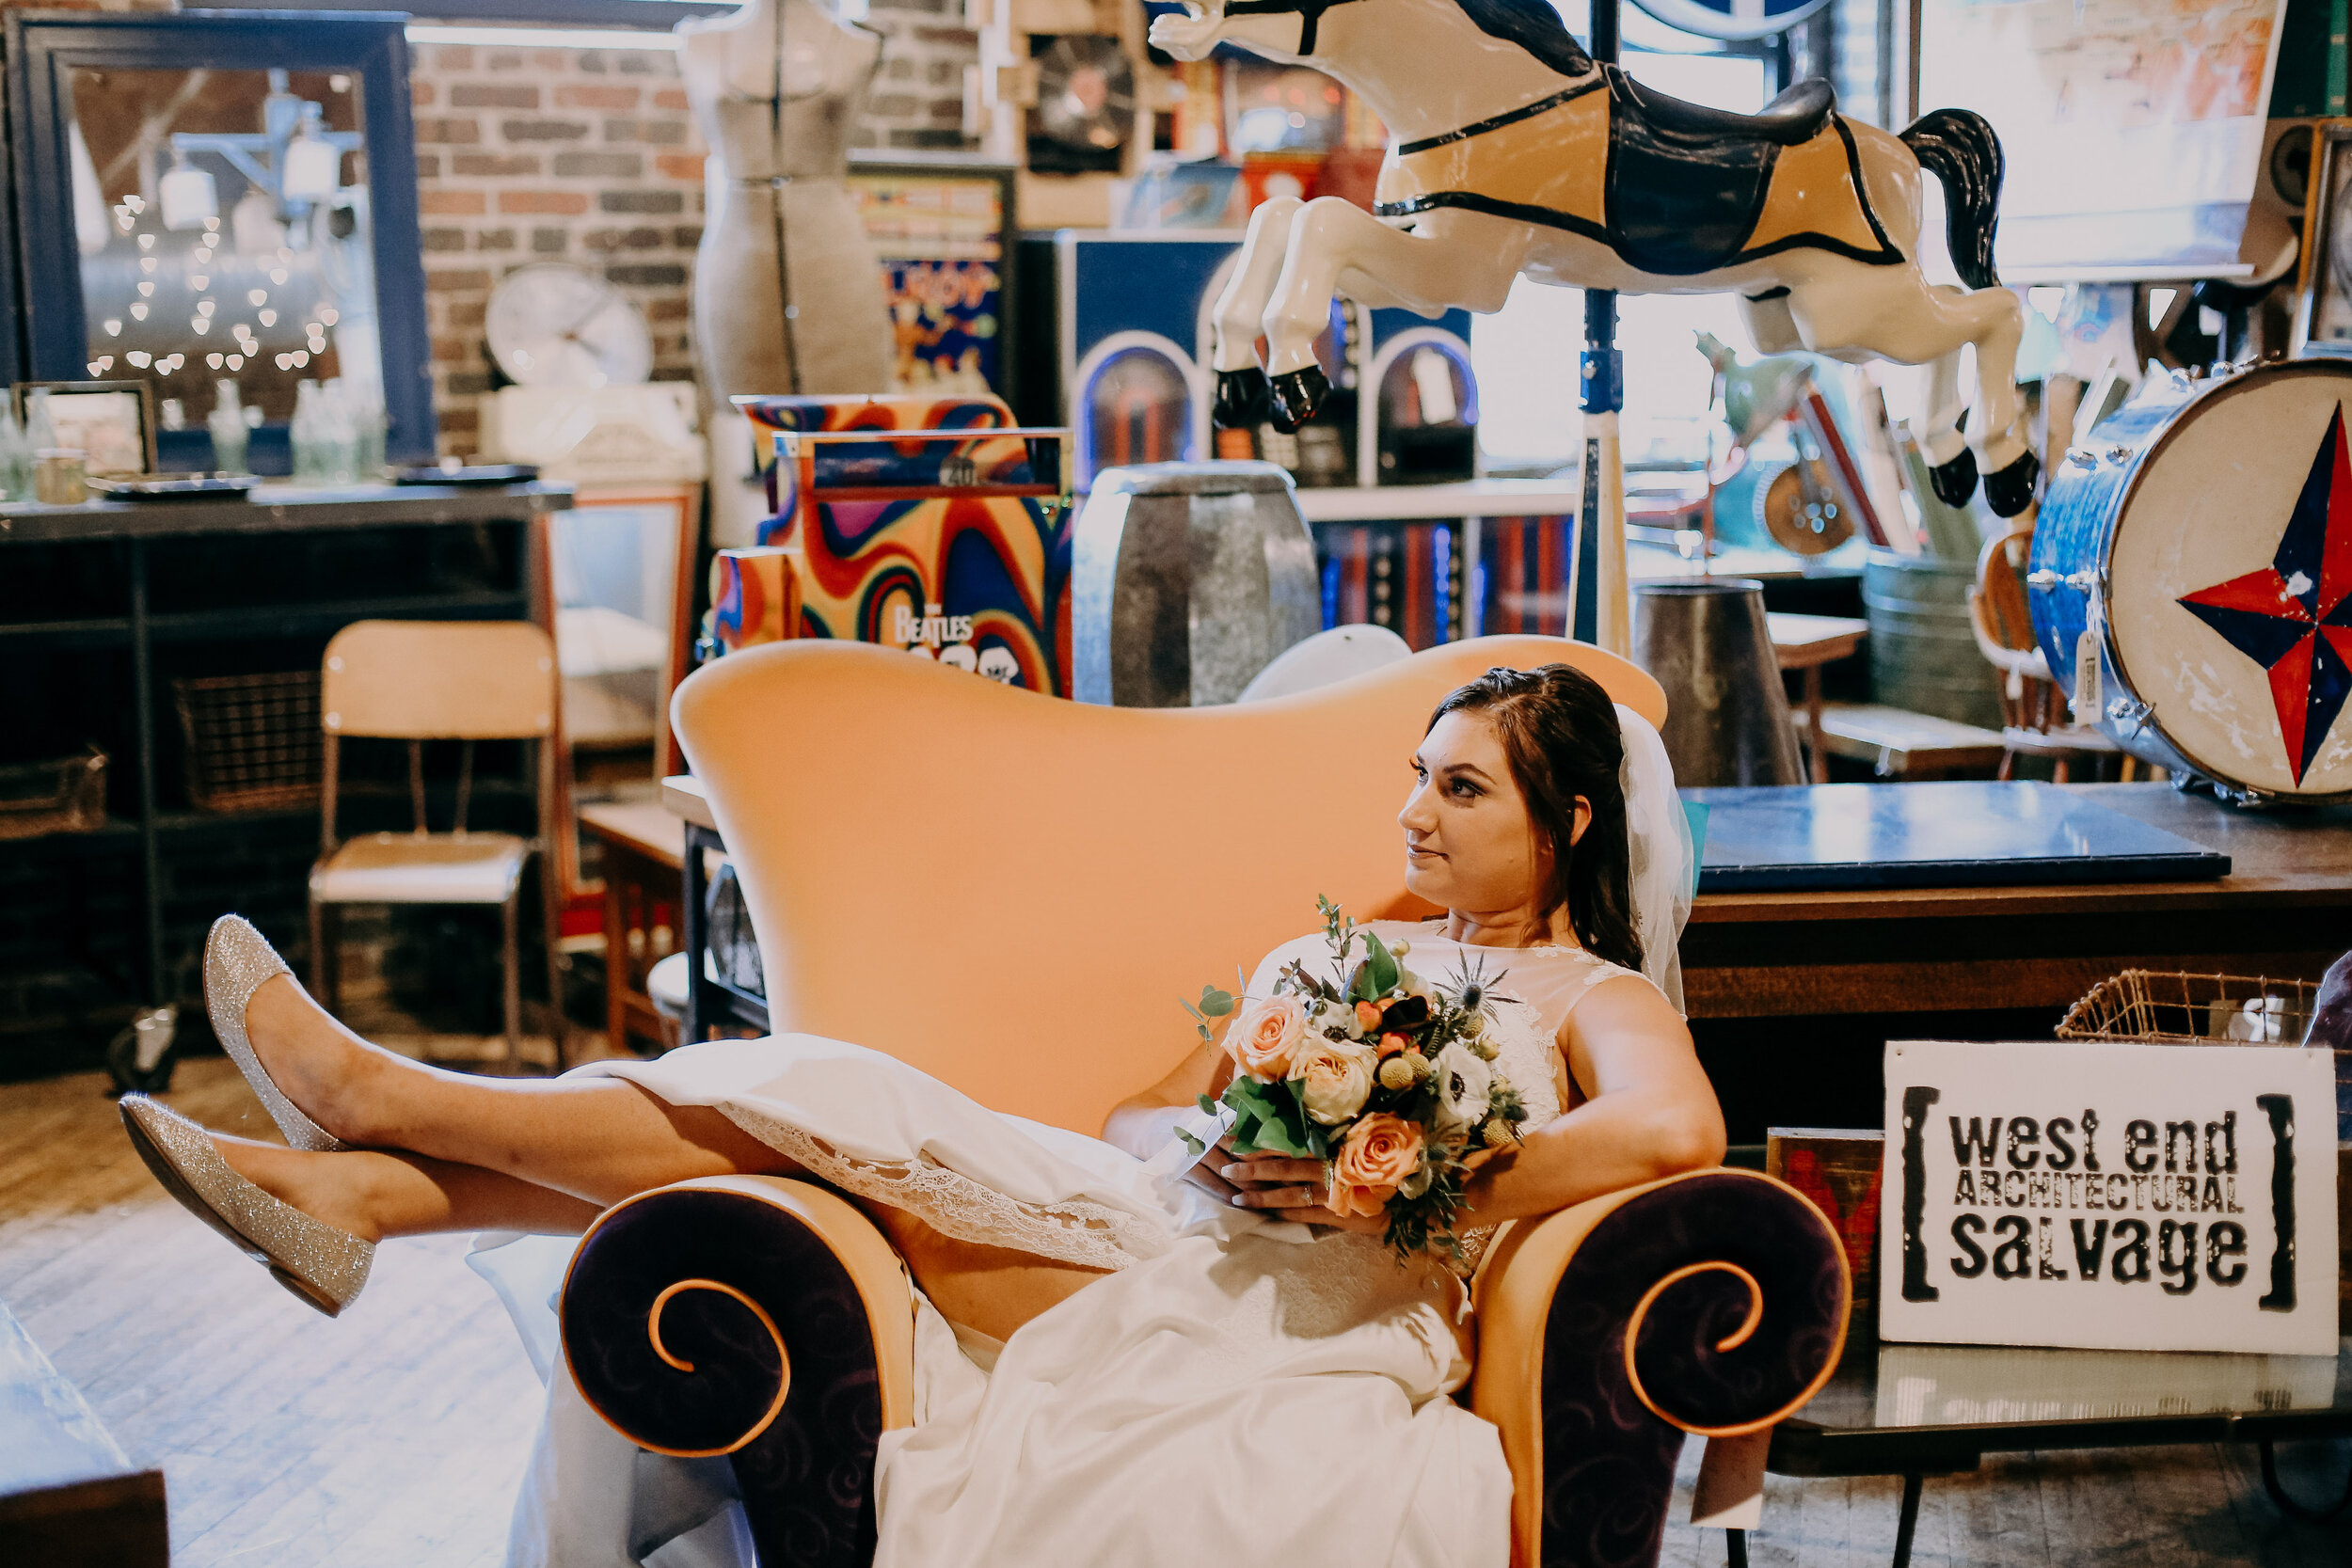 wedding at West End Salvage in Des Moines Iowa was the setting for this happy and relaxed bride as she sets her feet up on a designer black and orange chair, with vintage rocking horse and mirrors in the background